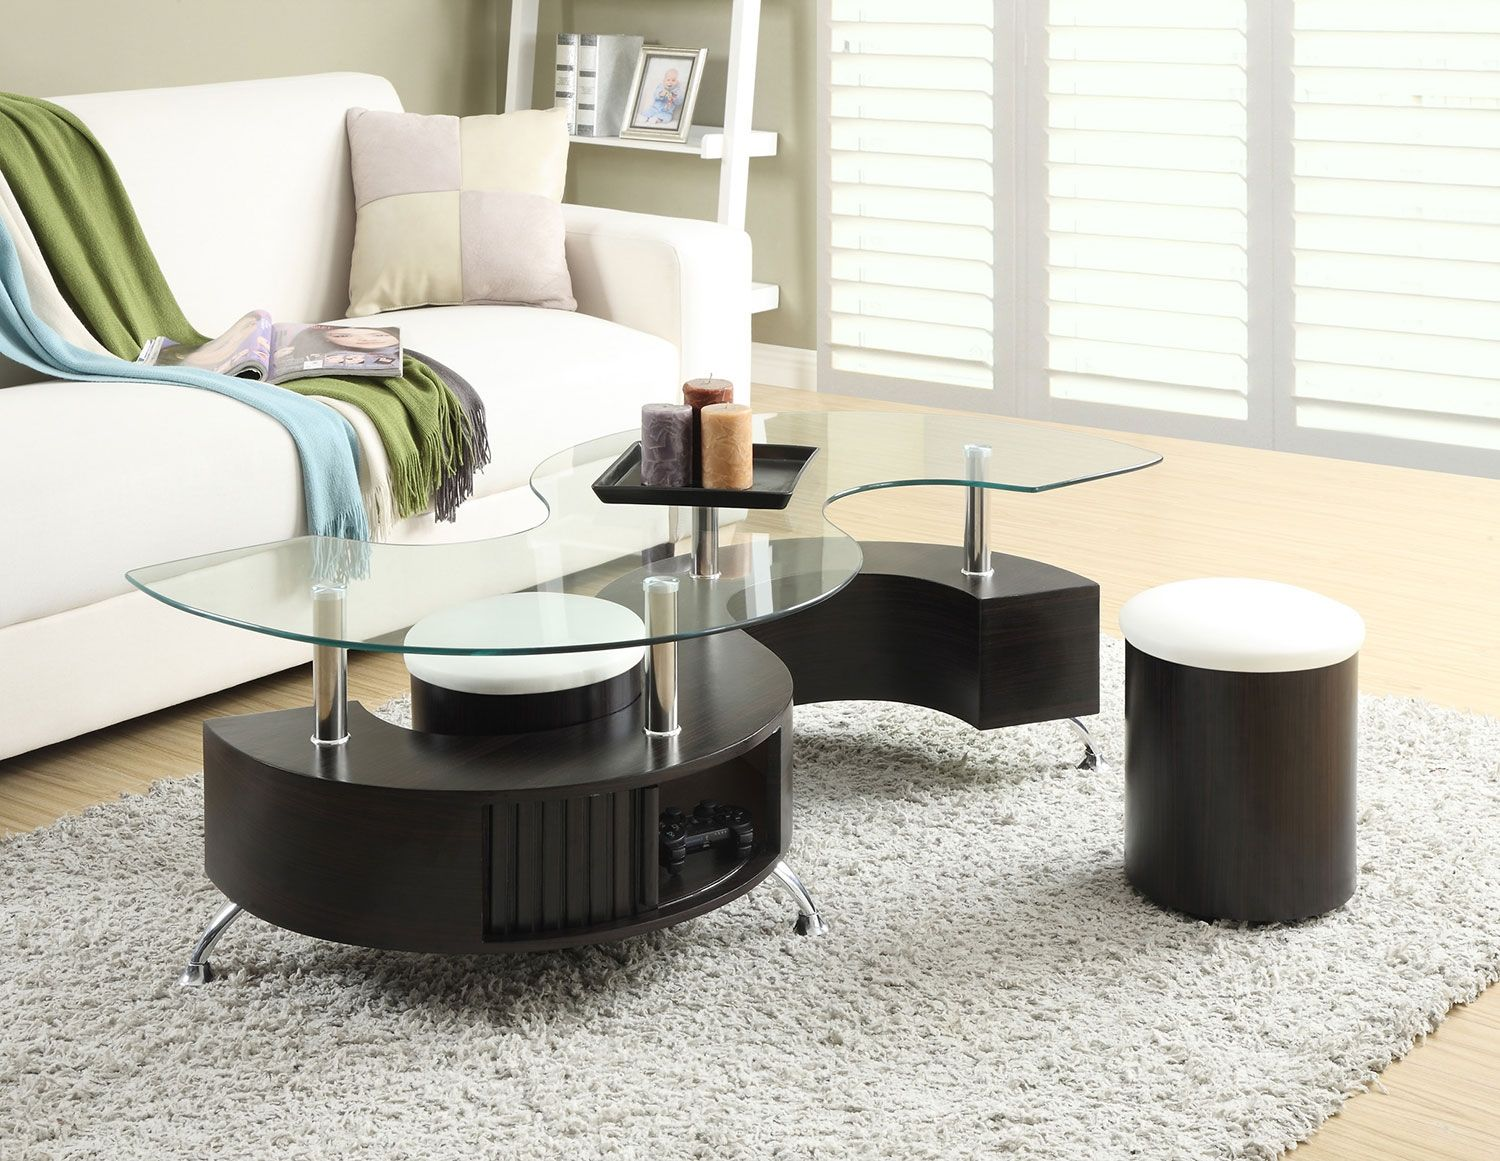 Seradala Coffee Table with Two Ottomans | Ottomans, Footrest and Bricks